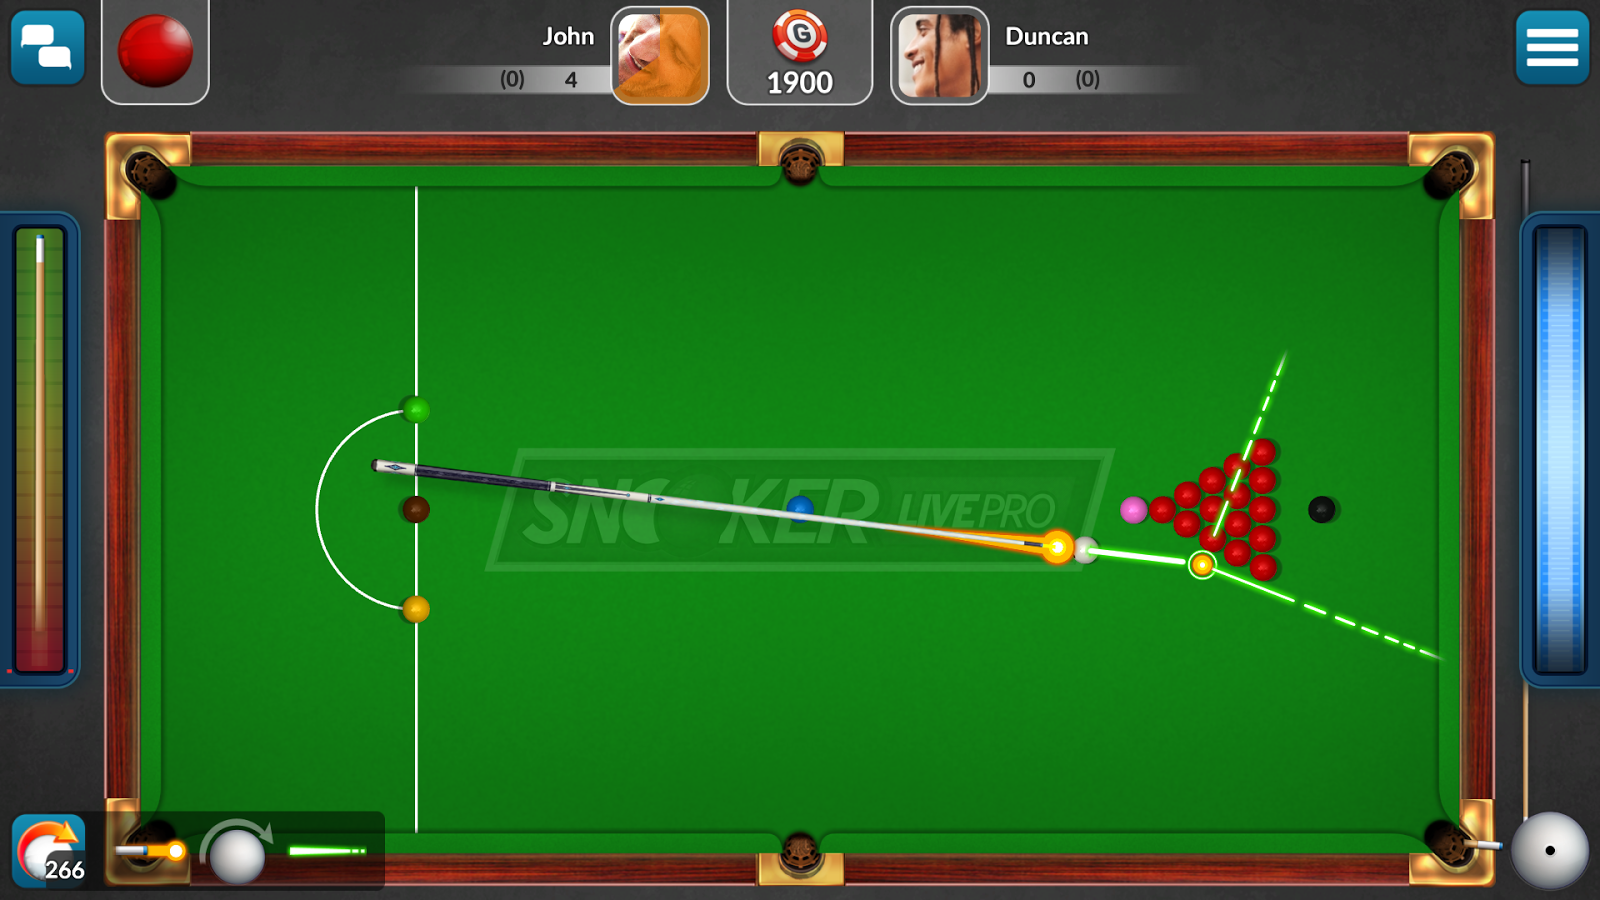 Snooker Live Pro Screenshot 0